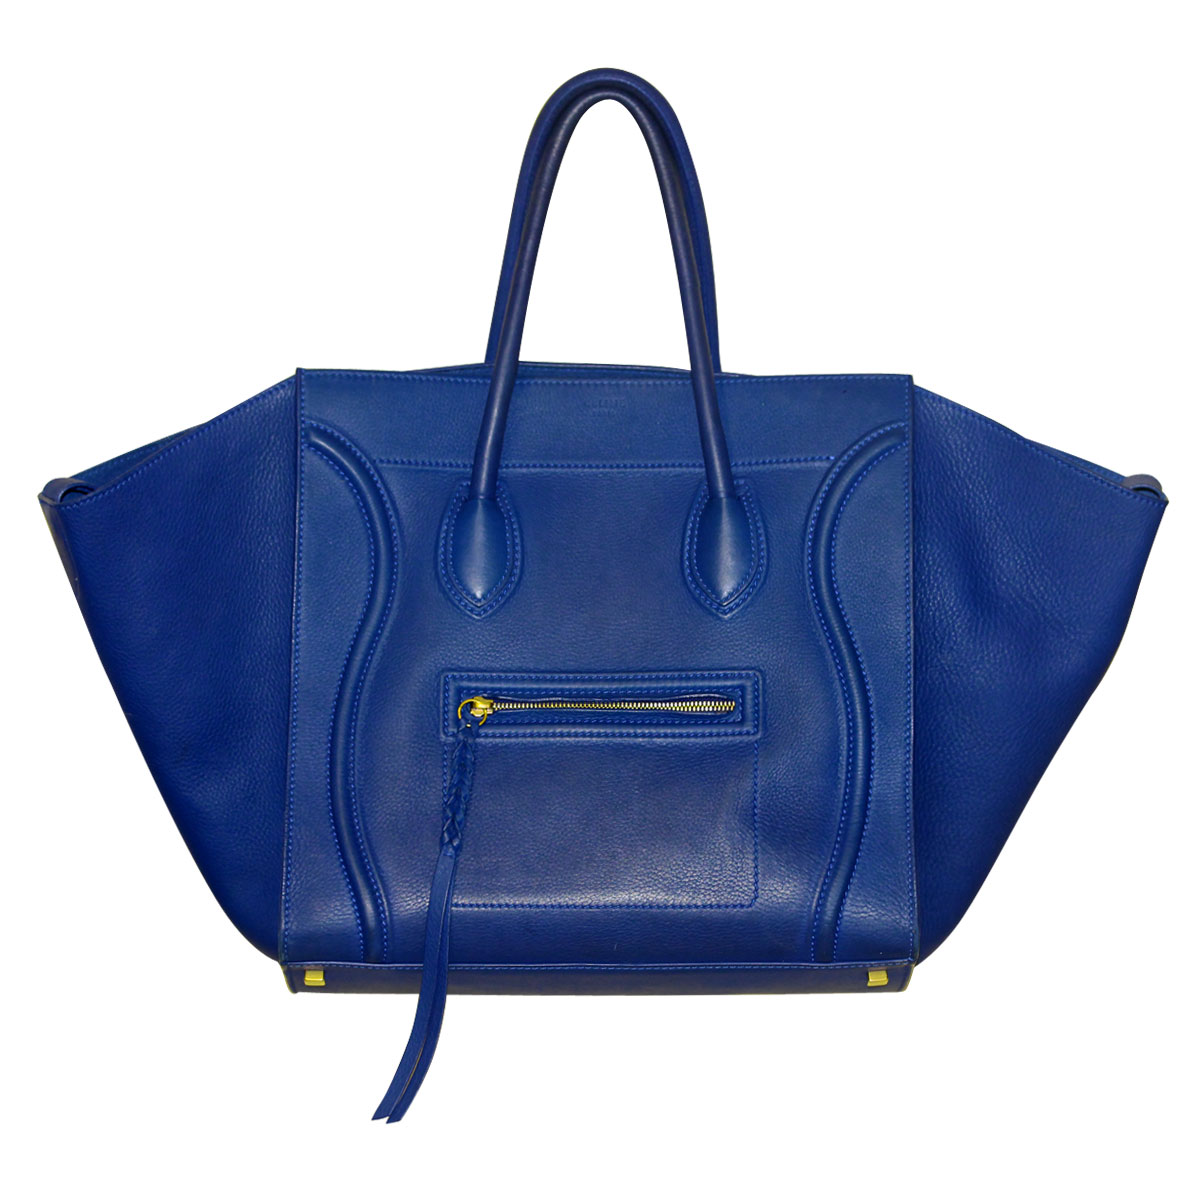 Blue Celine Phantom Tote